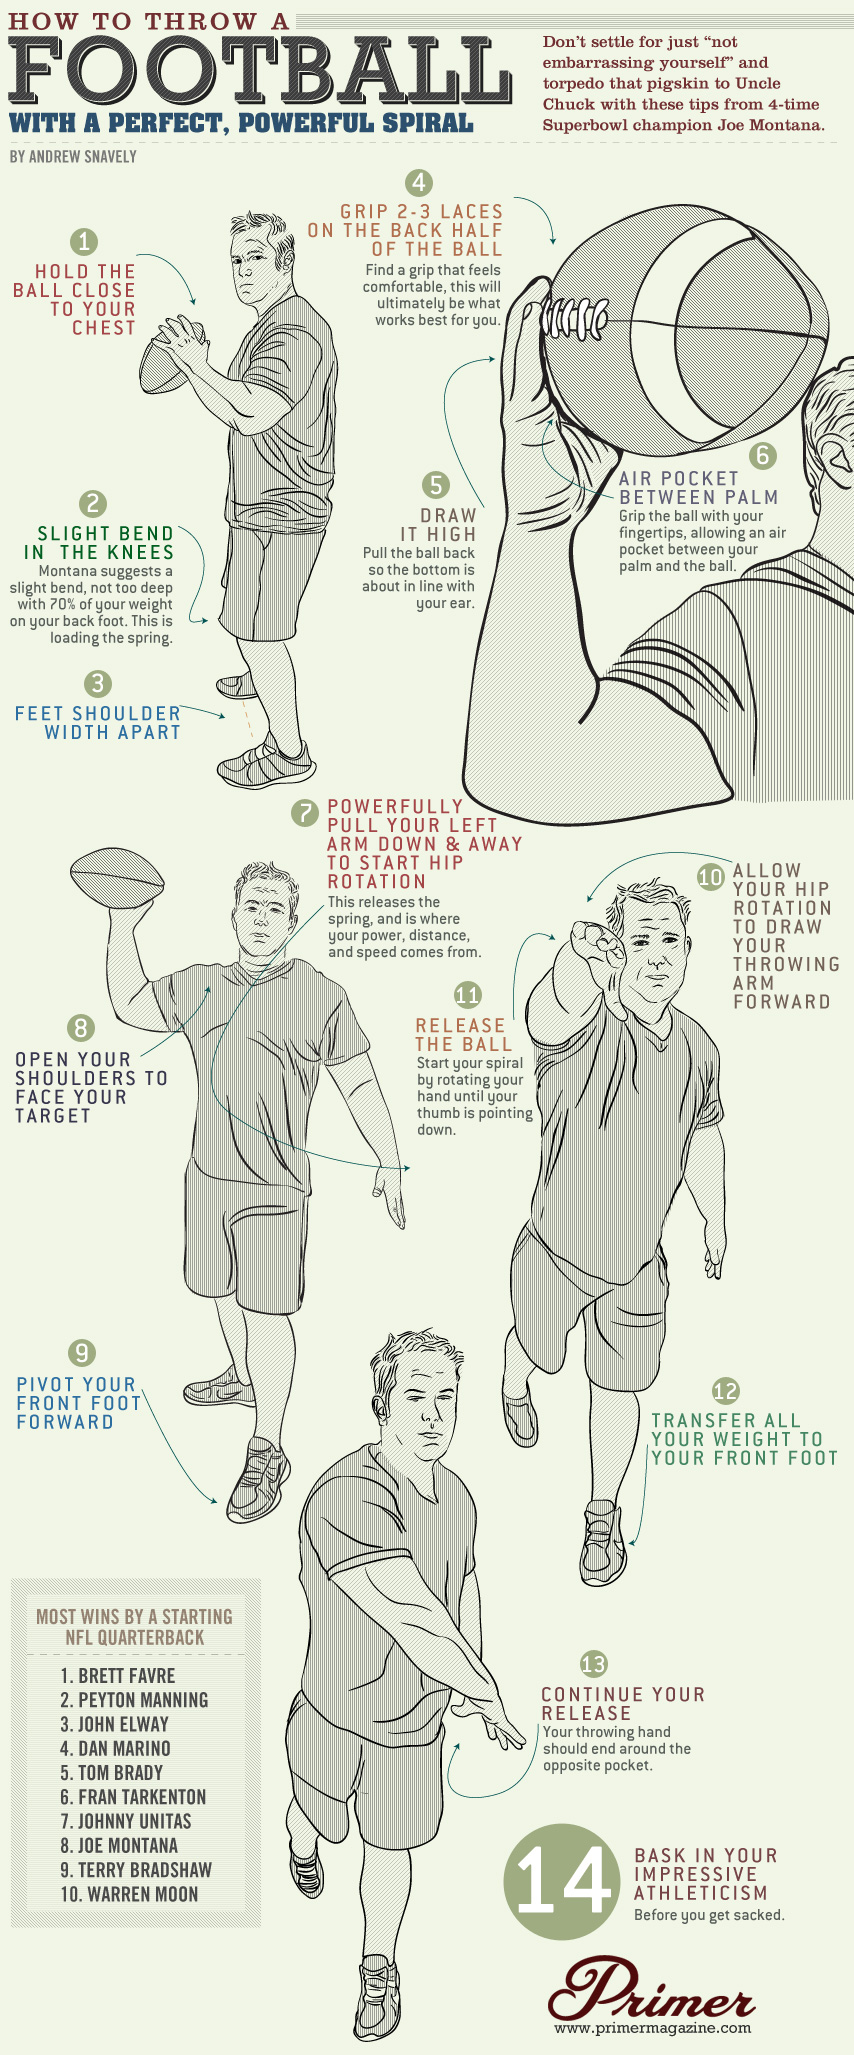 How to throw a football with a spiral infographic